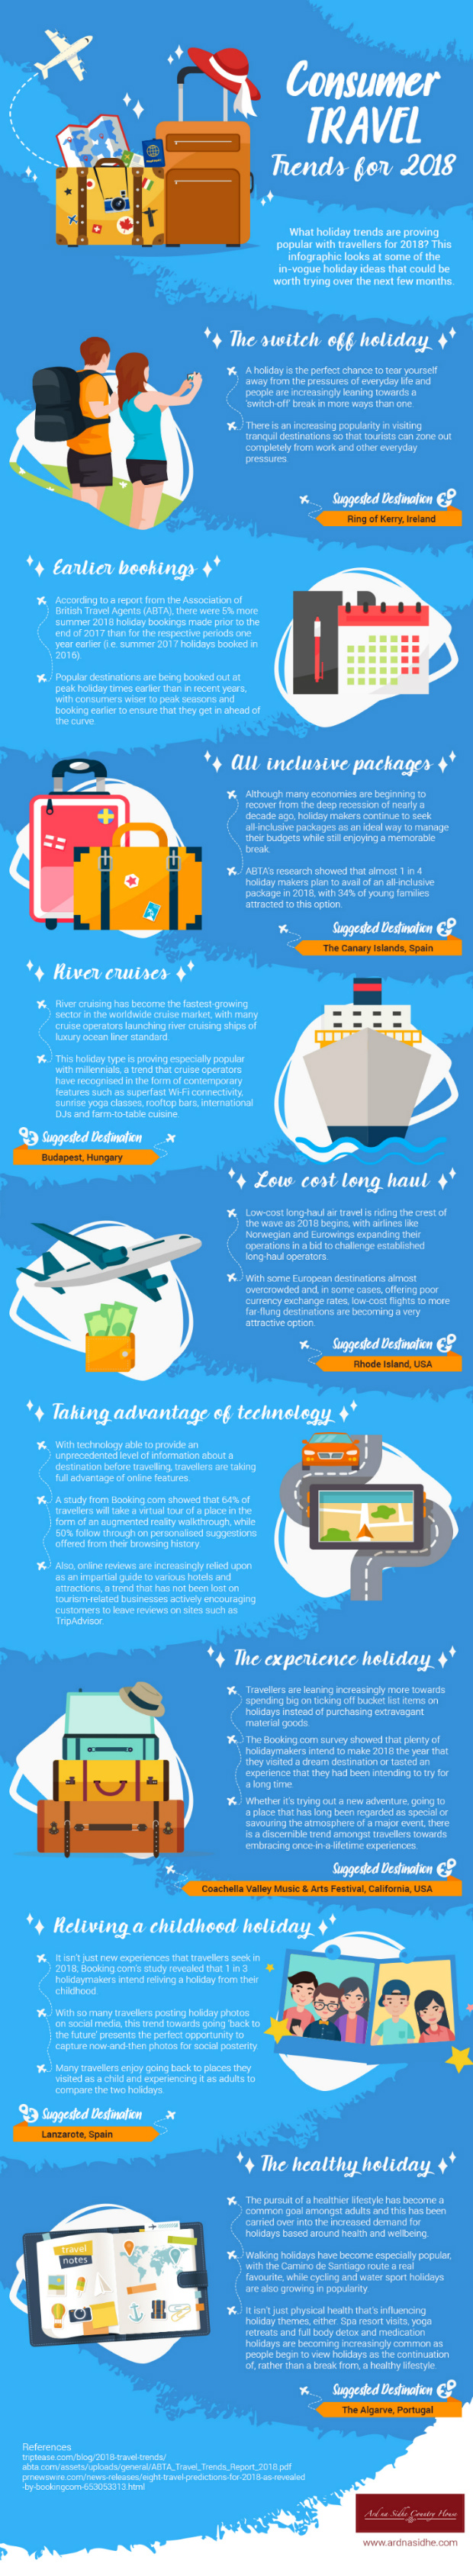 consumer travel trends infographic